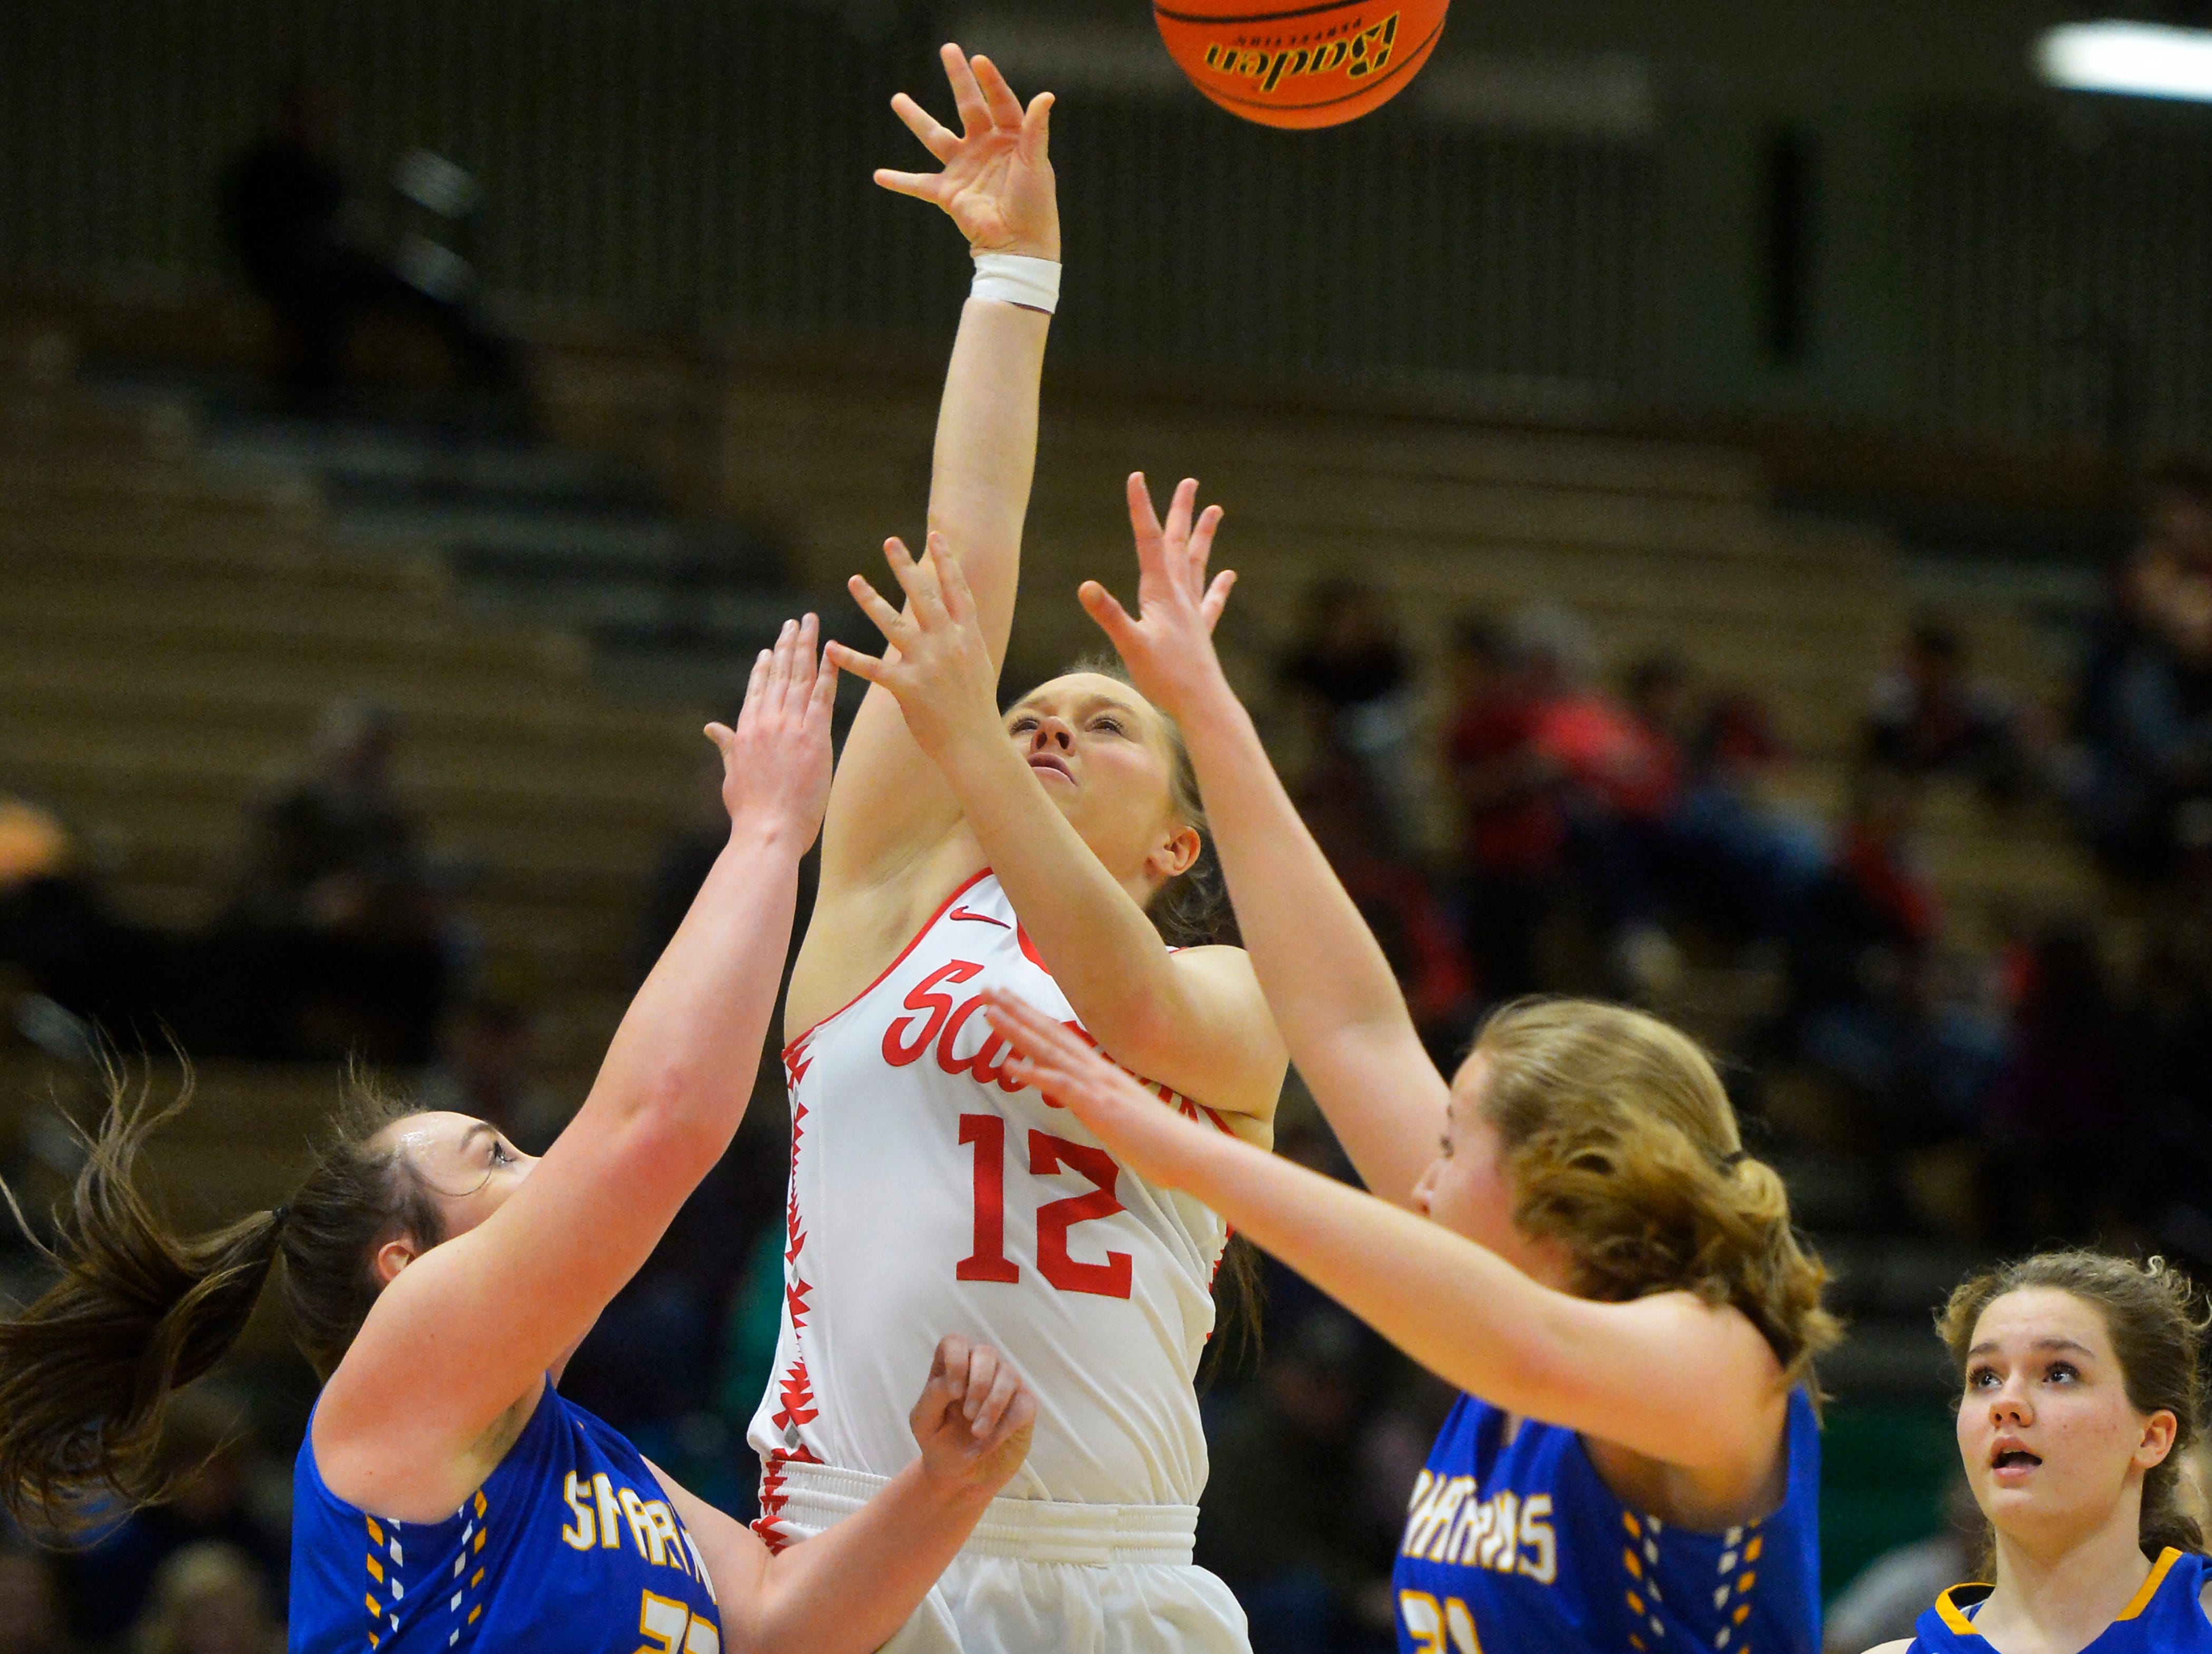 Arlee and Scobey play in the first round of the Girls State C Basketball Tournament on Thursday in the Four Seasons Arena.